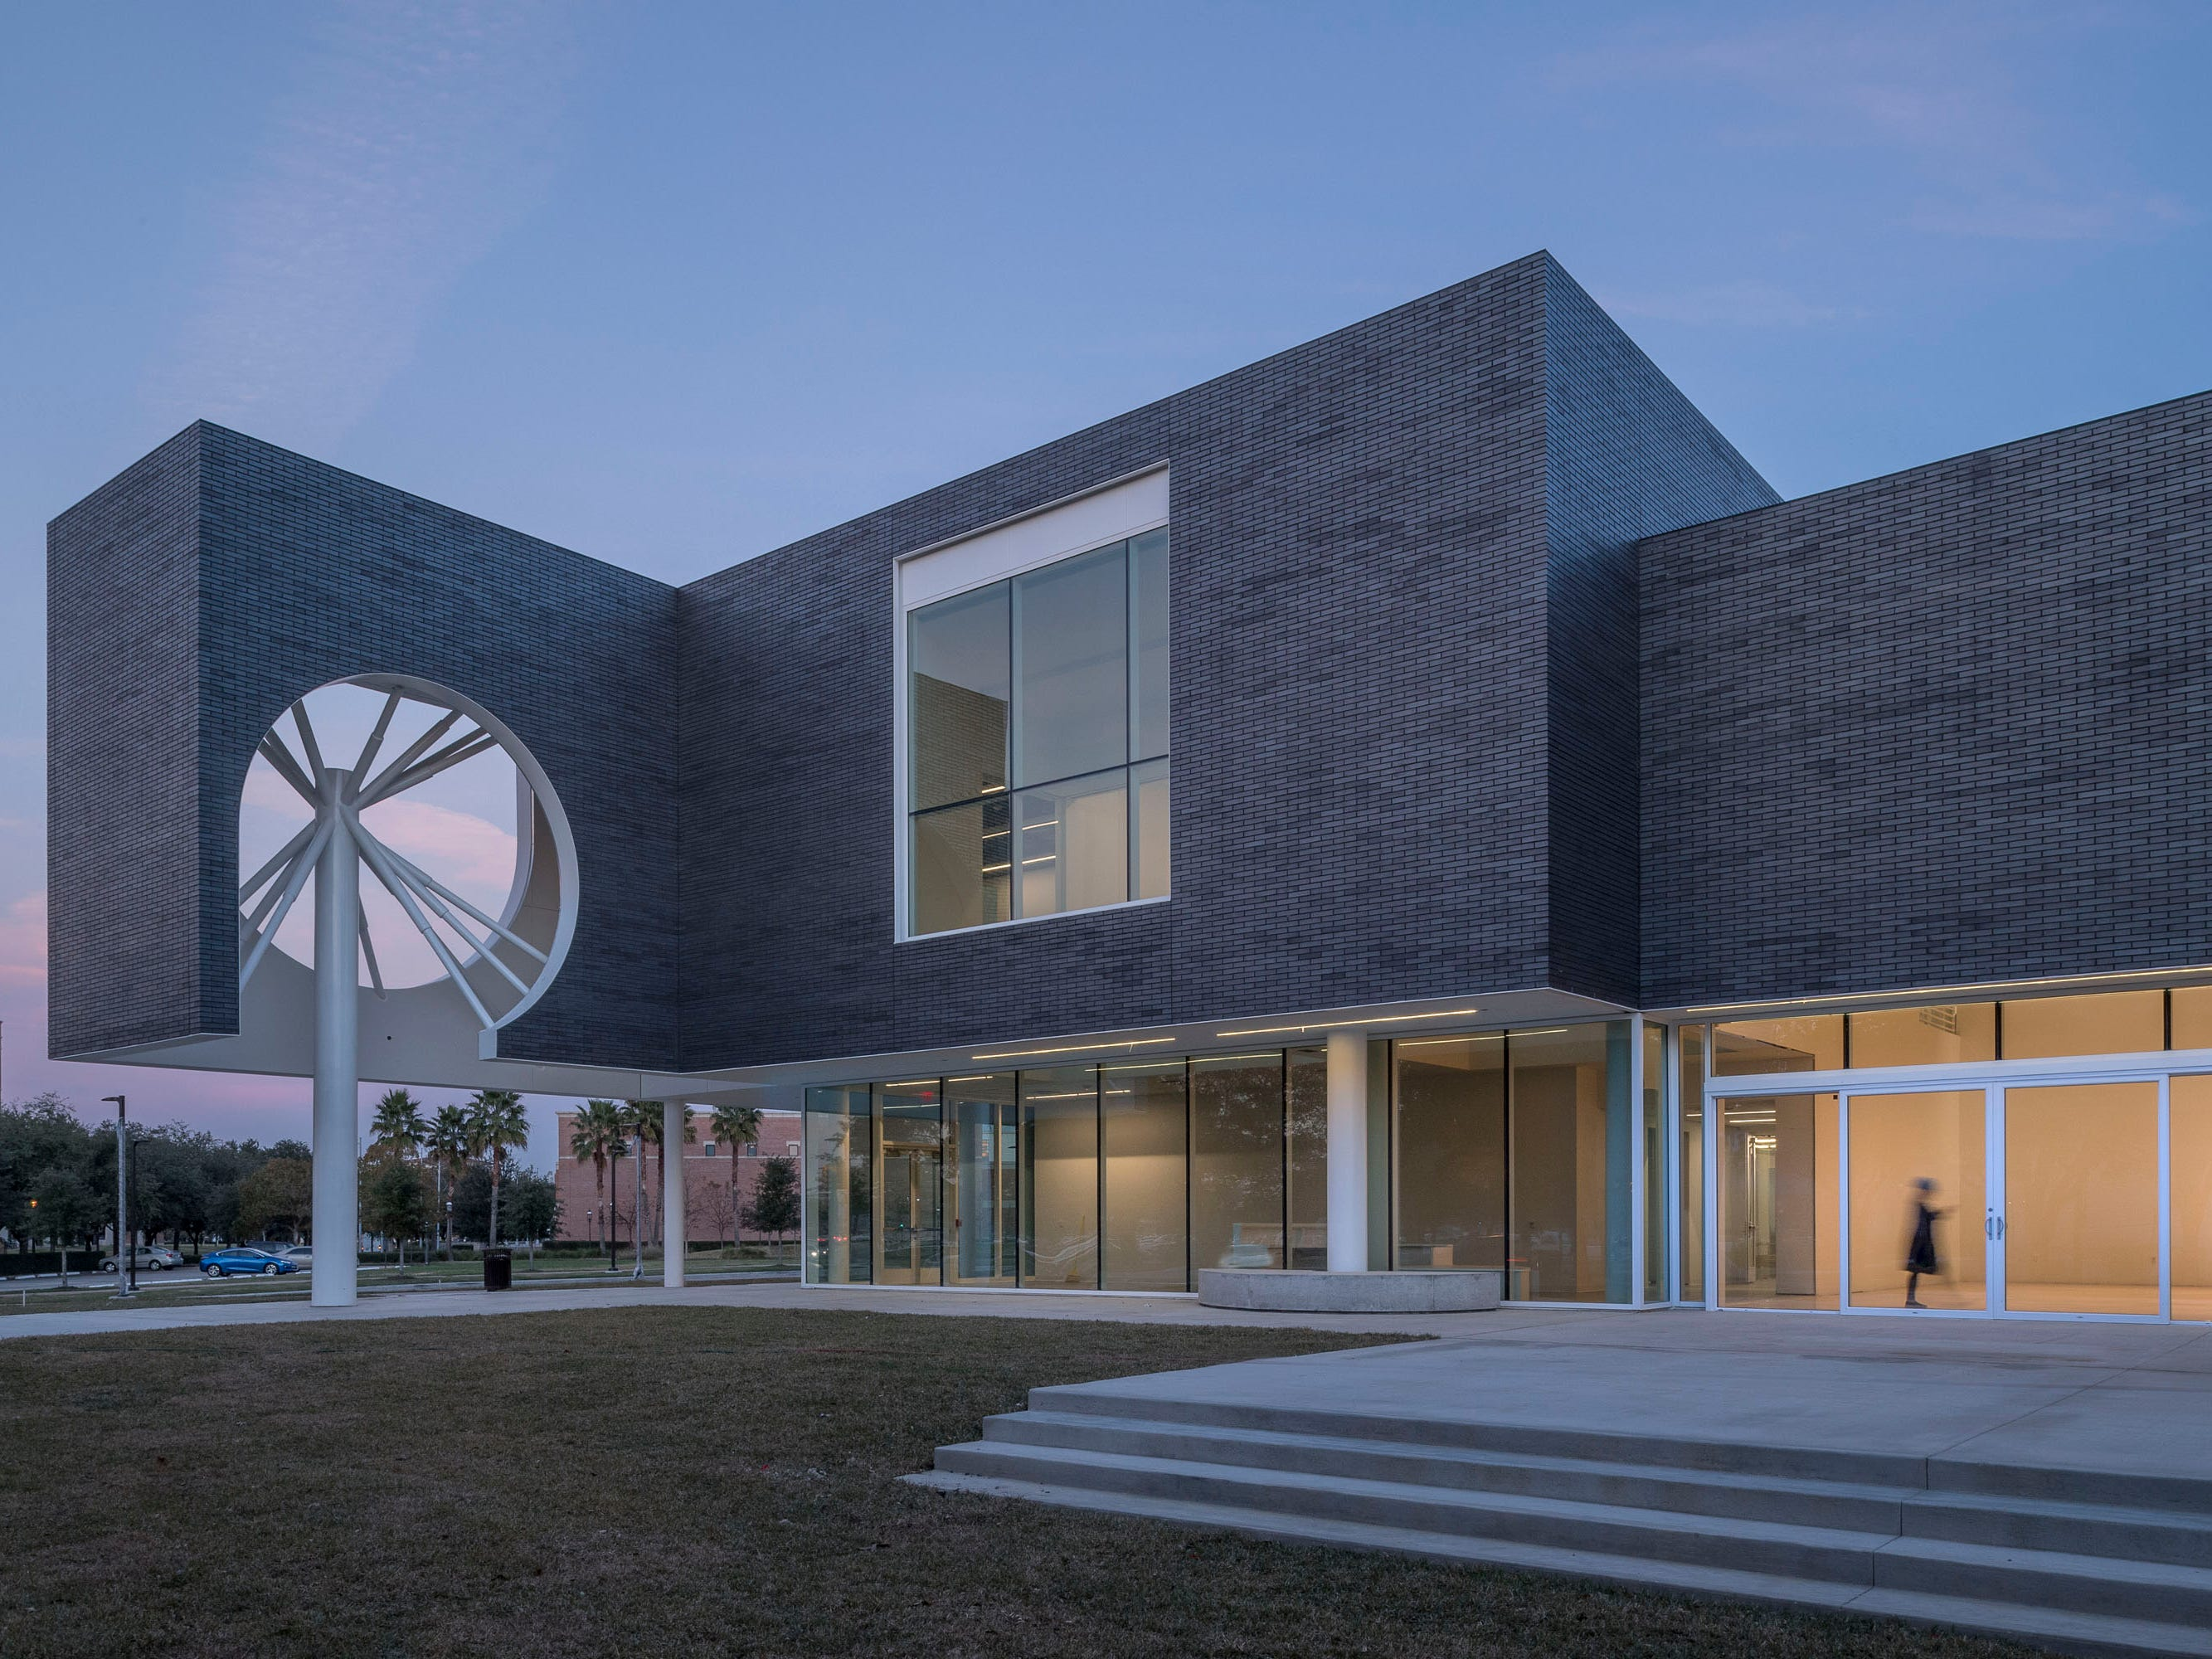 Texas: The Moody Center for the Arts at Rice University was designed by Los Angeles-based architect Michael Maltzan.